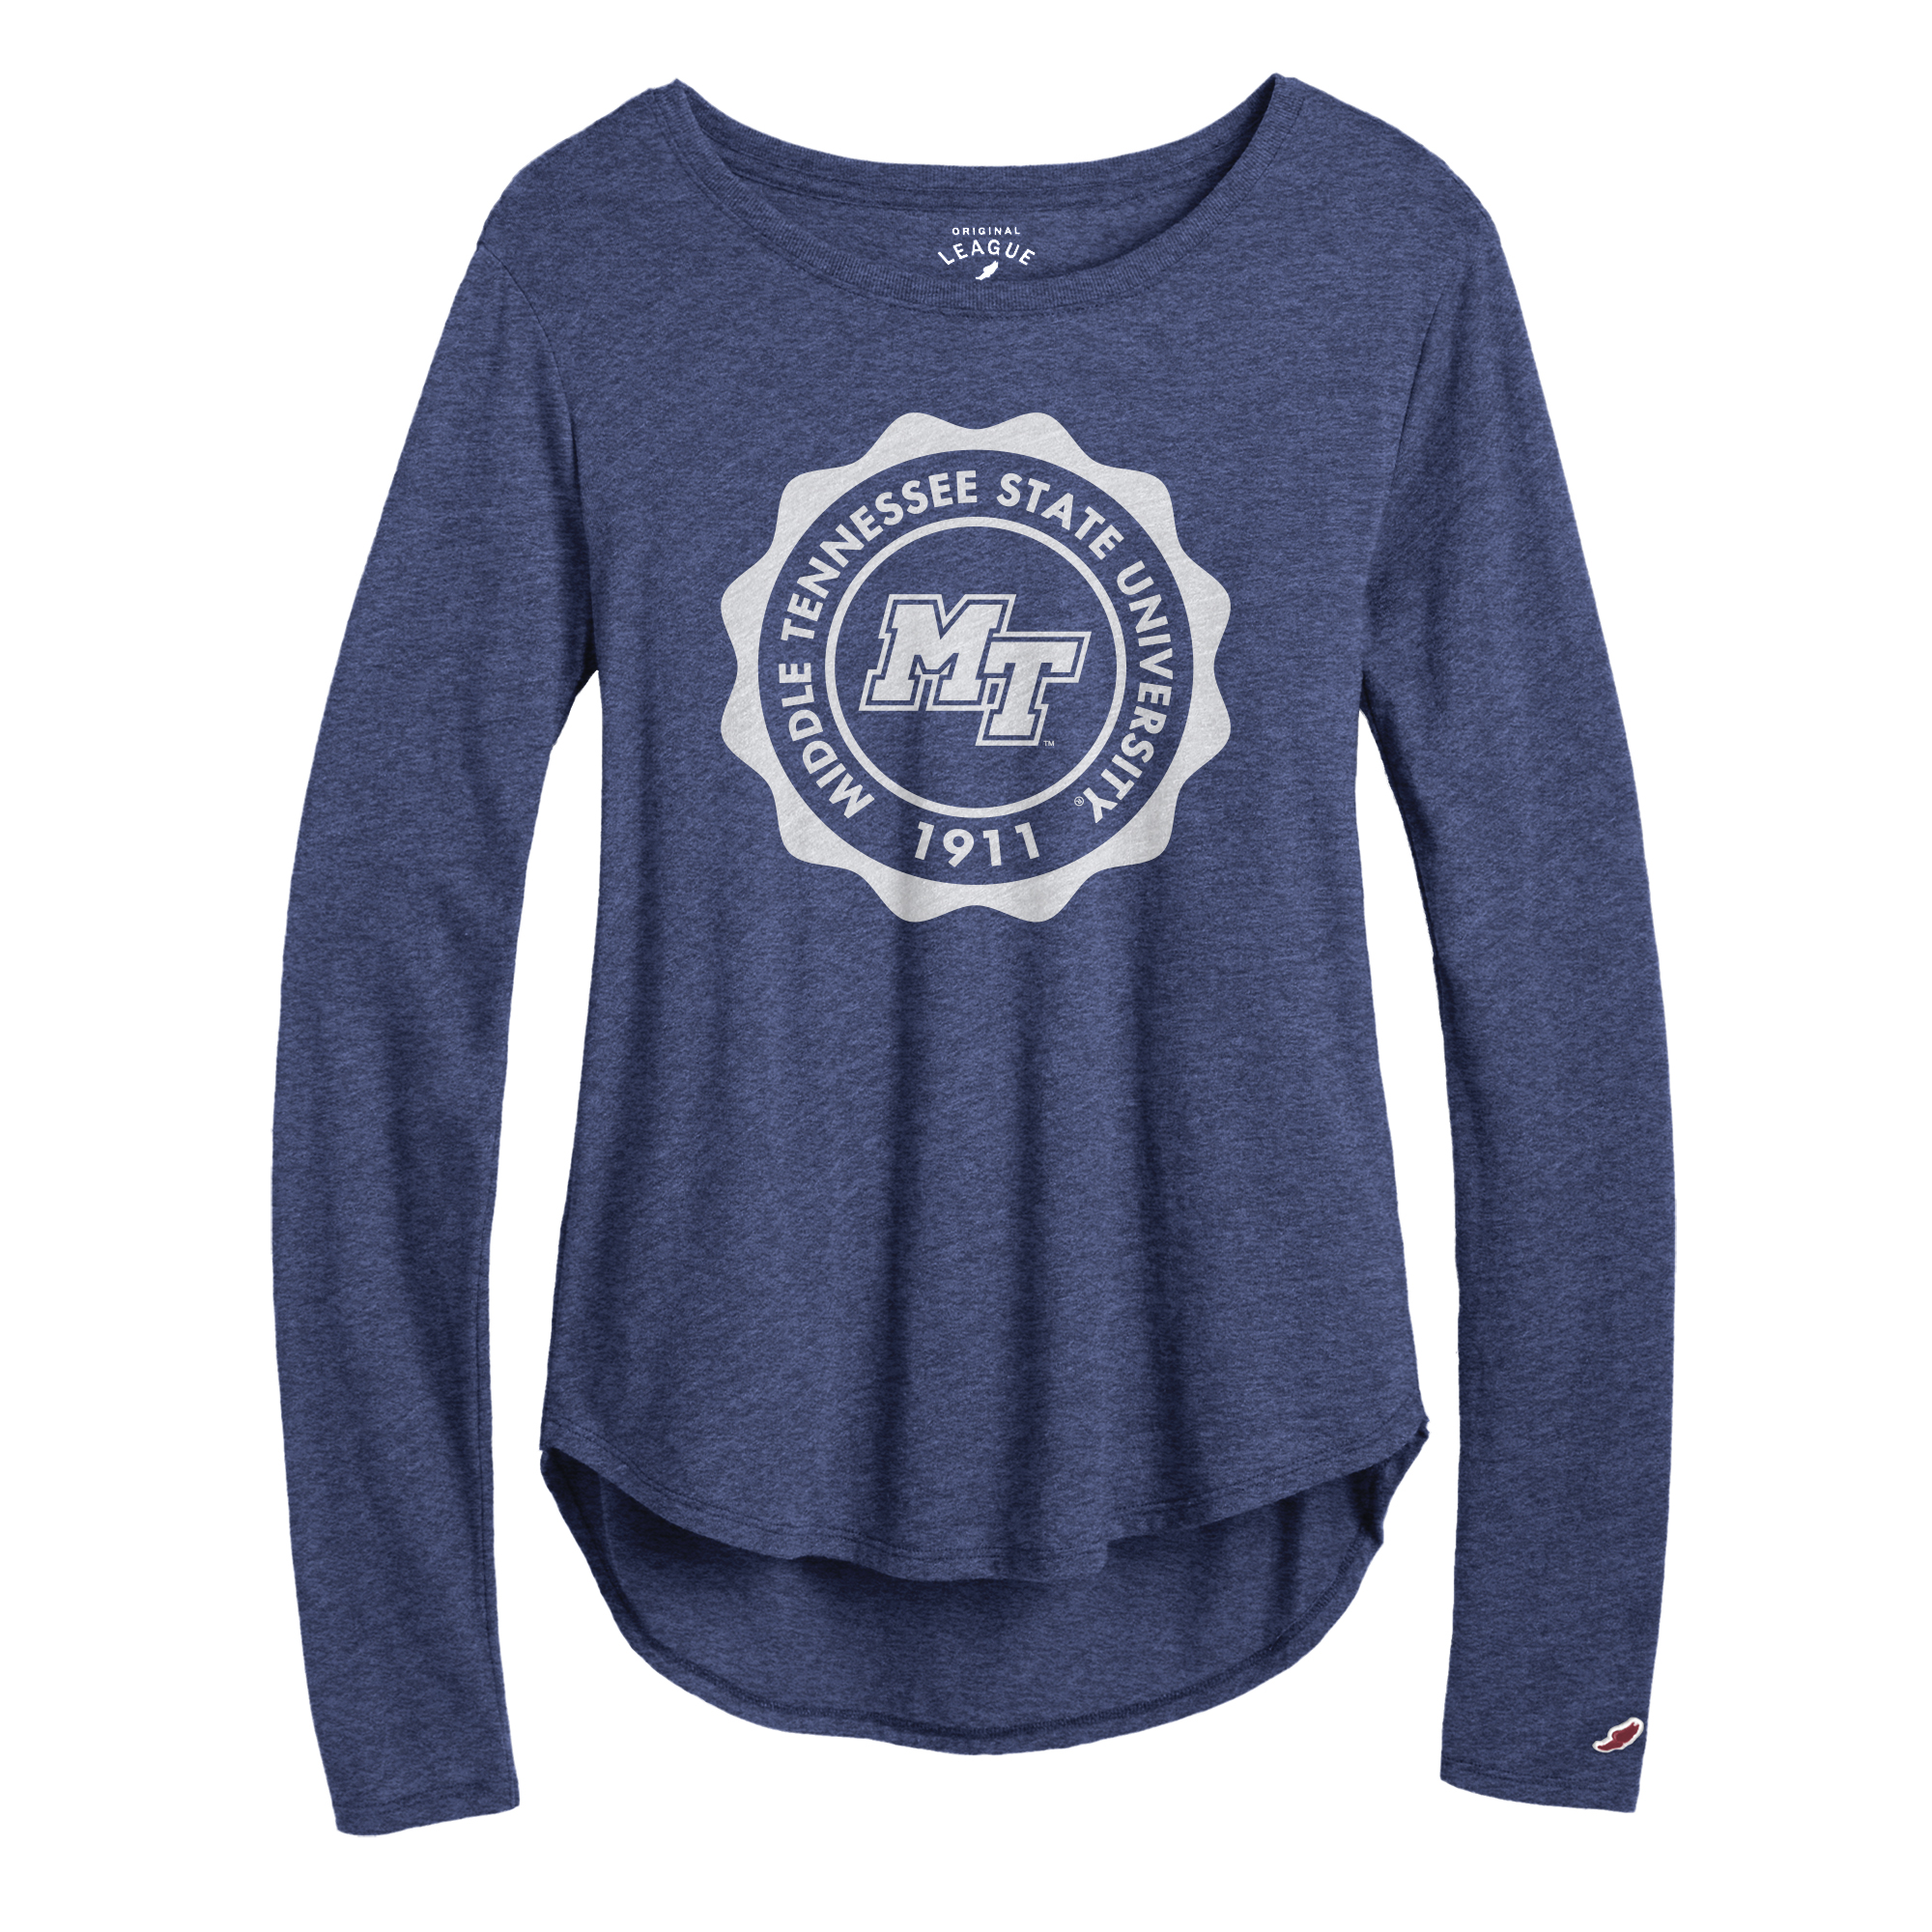 Middle Tennessee Est. 1911 Favorite Women's Long Sleeve Shirt